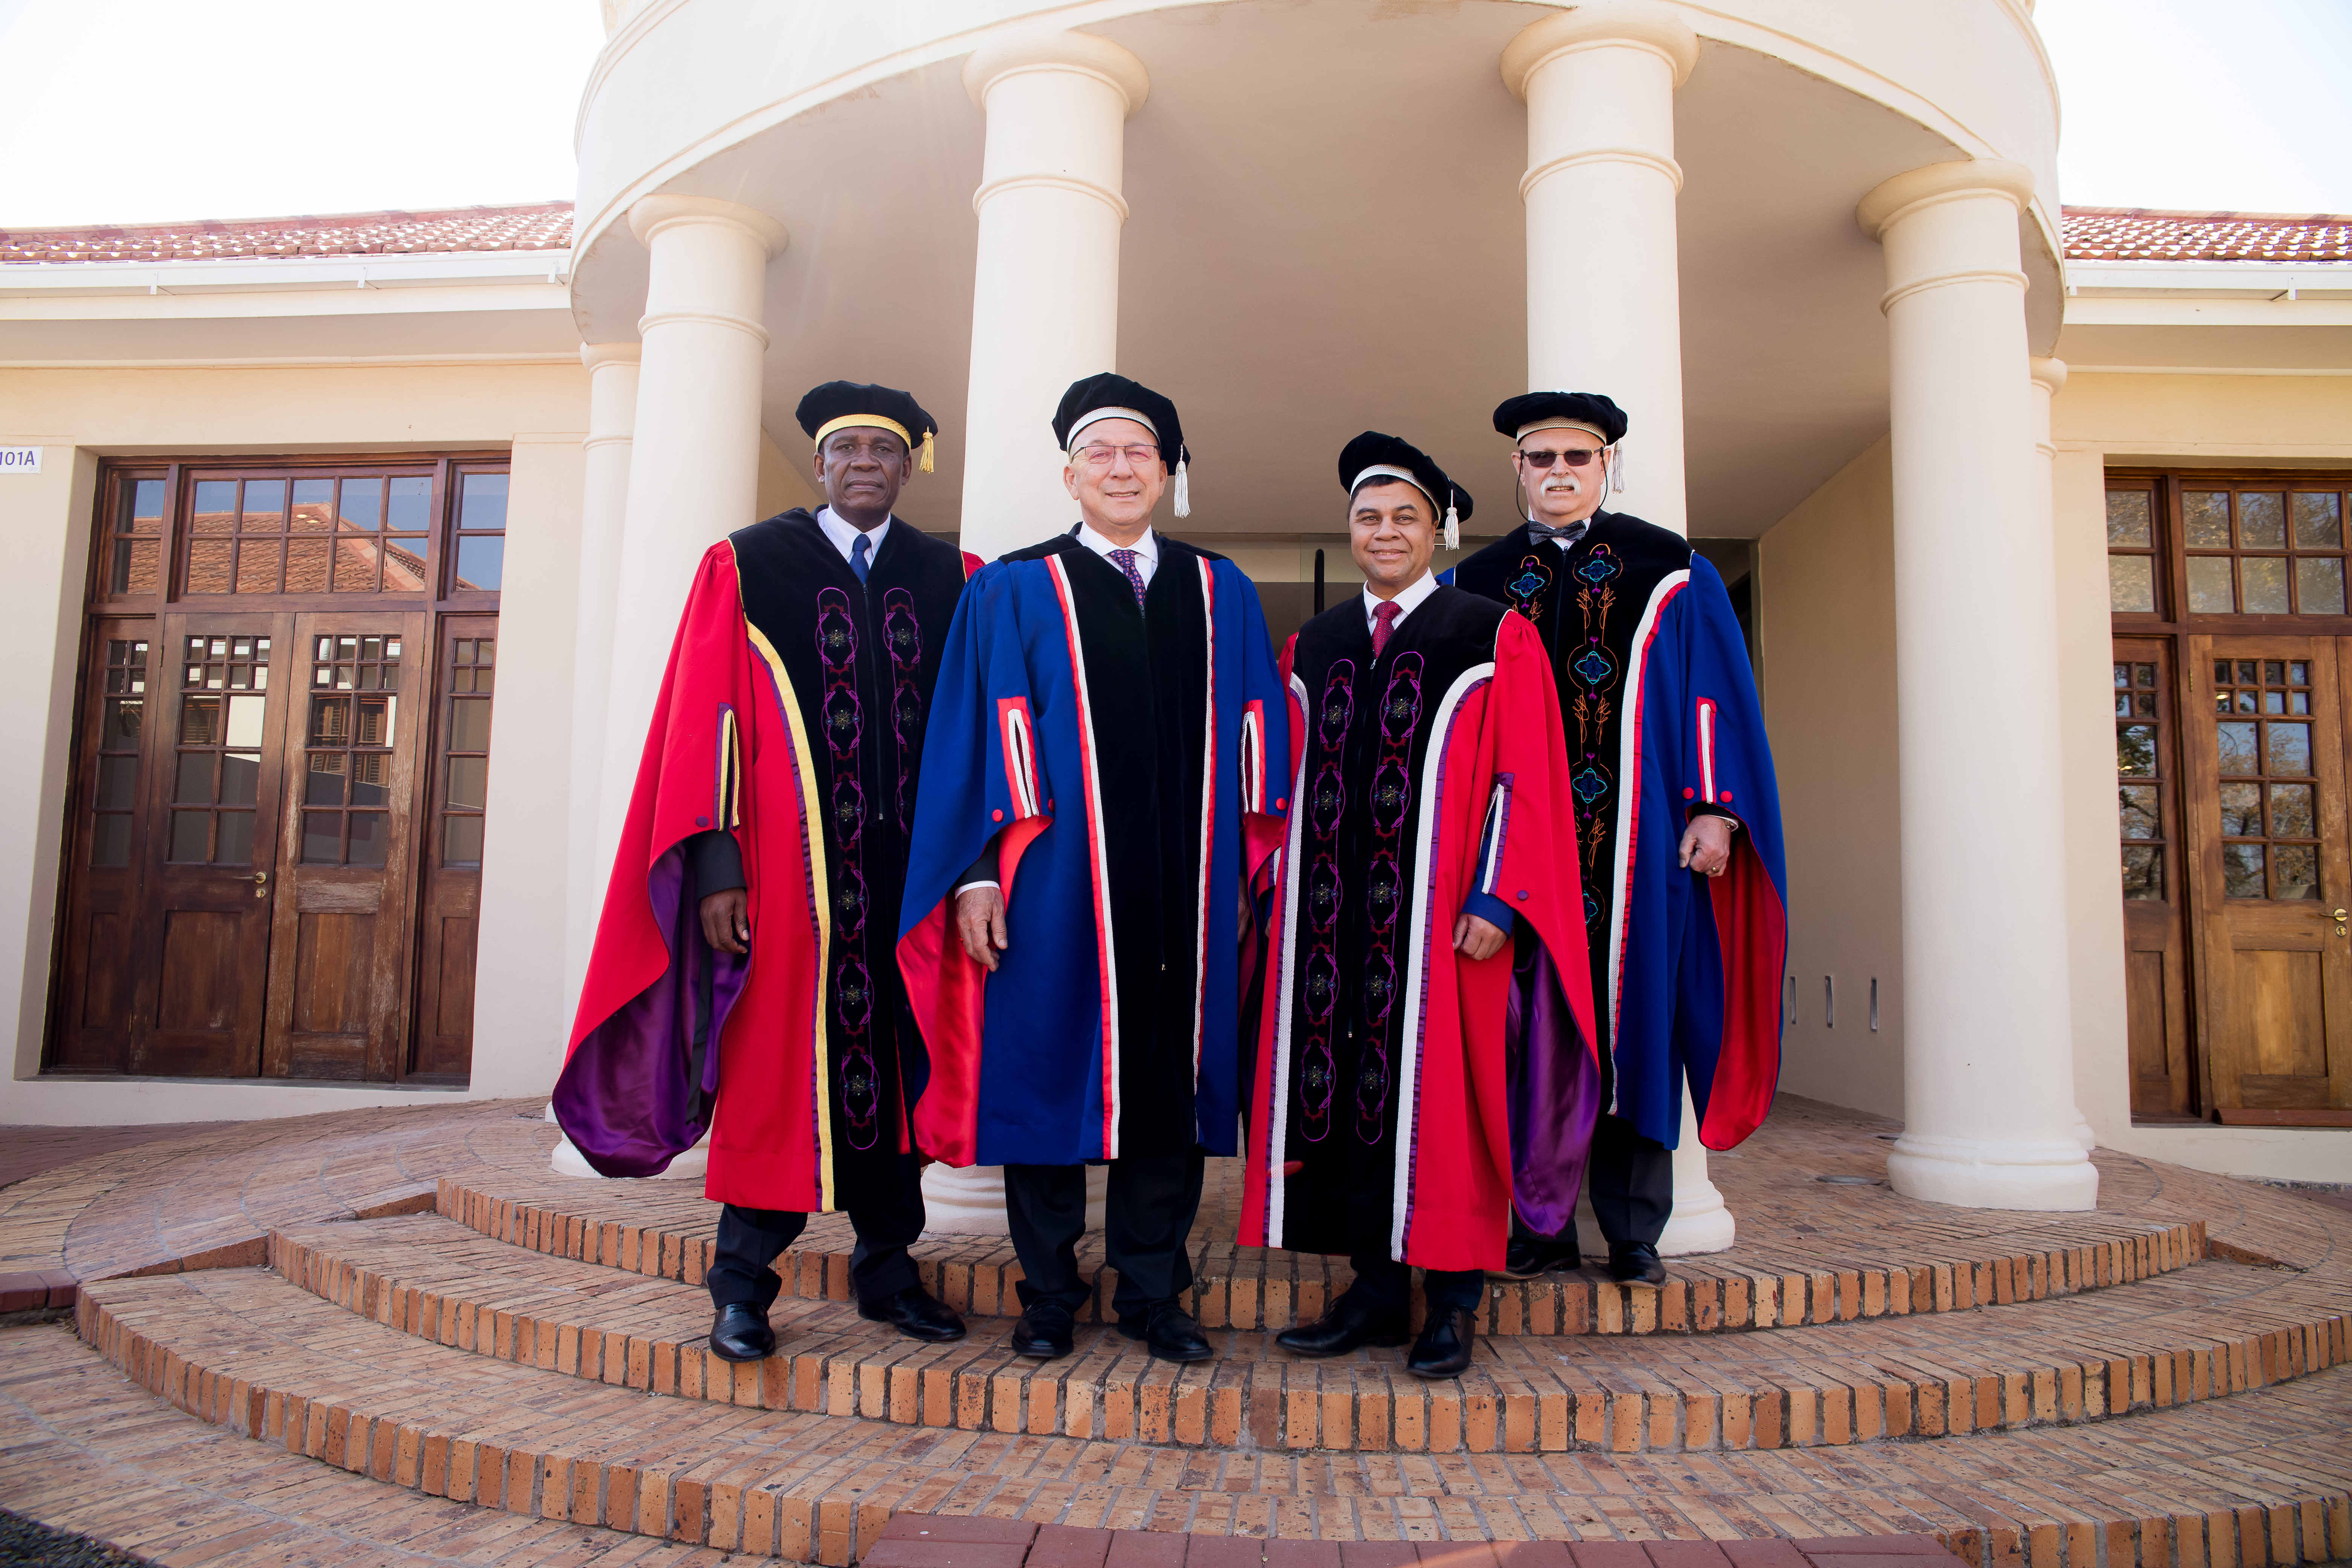 Dr Khotso Mokhele, UFS Chancellor, Dr Trevor Manueal, Prof Francis Petersen, UFS Rector and Vice-Chancellor and Mr Willem Louw, Chairperson of the UFS Council